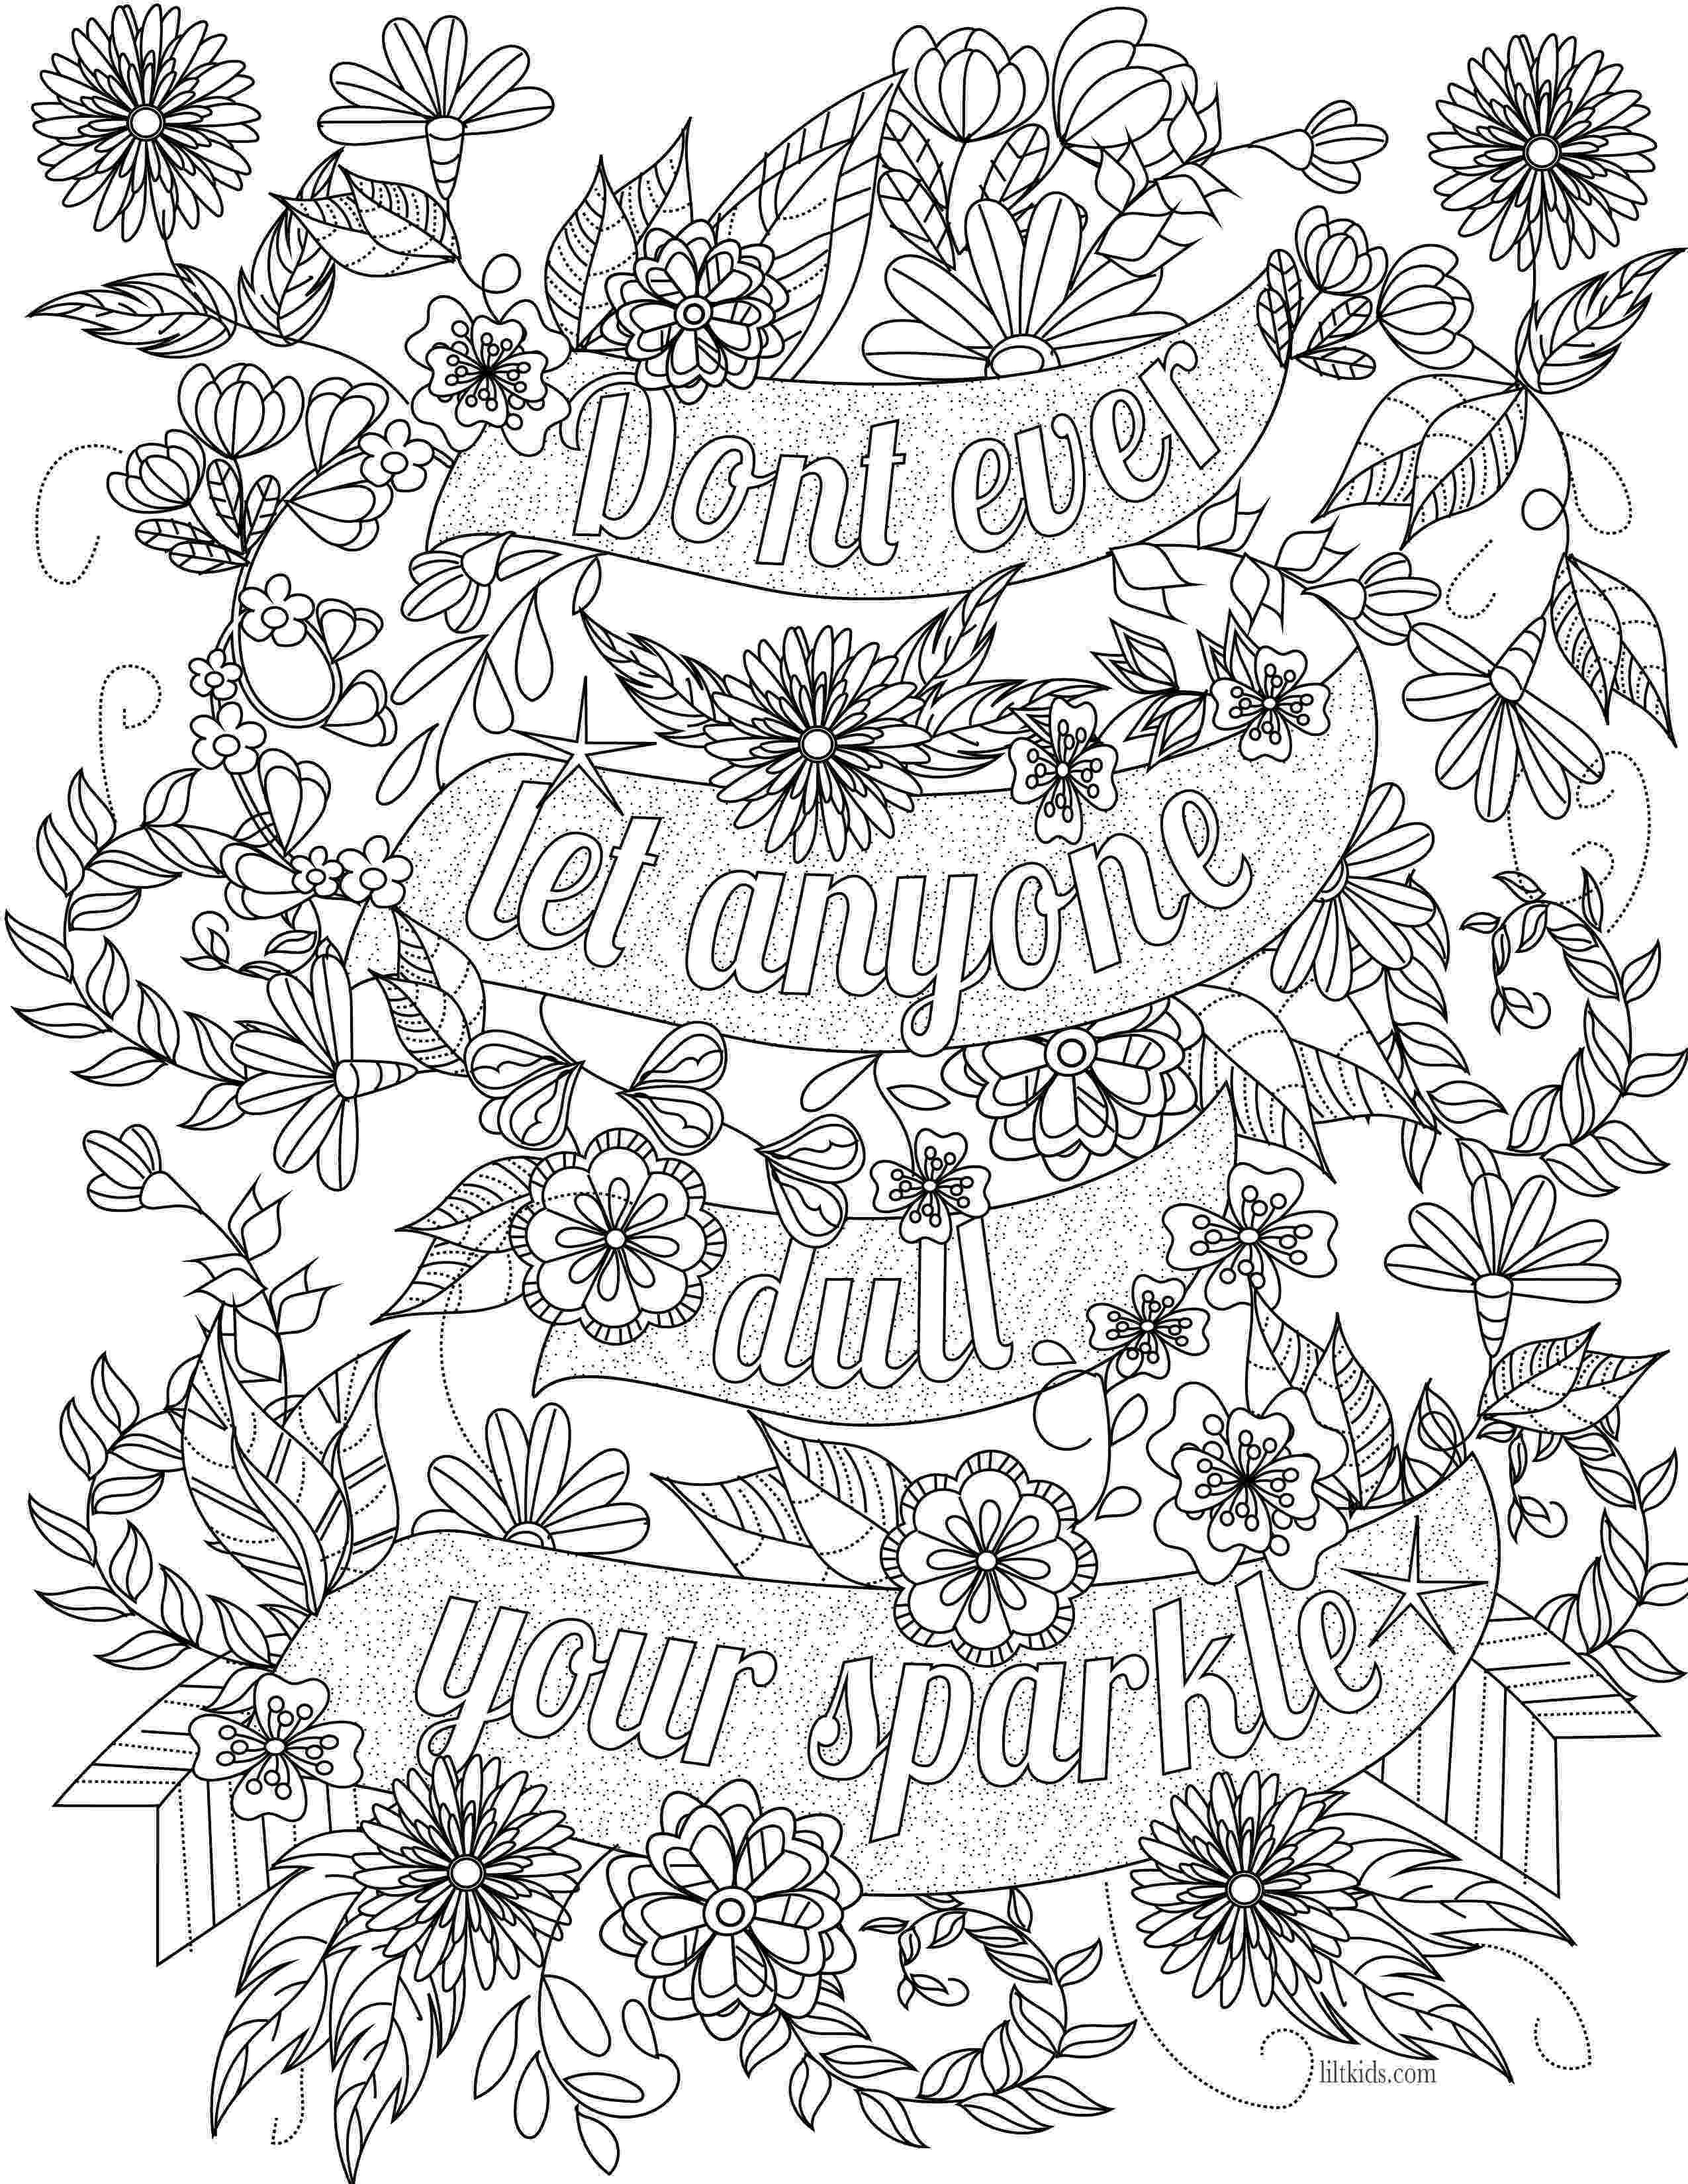 printable coloring quote pages for adults free printable love quotes coloring sheets sarah titus pages coloring quote printable for adults